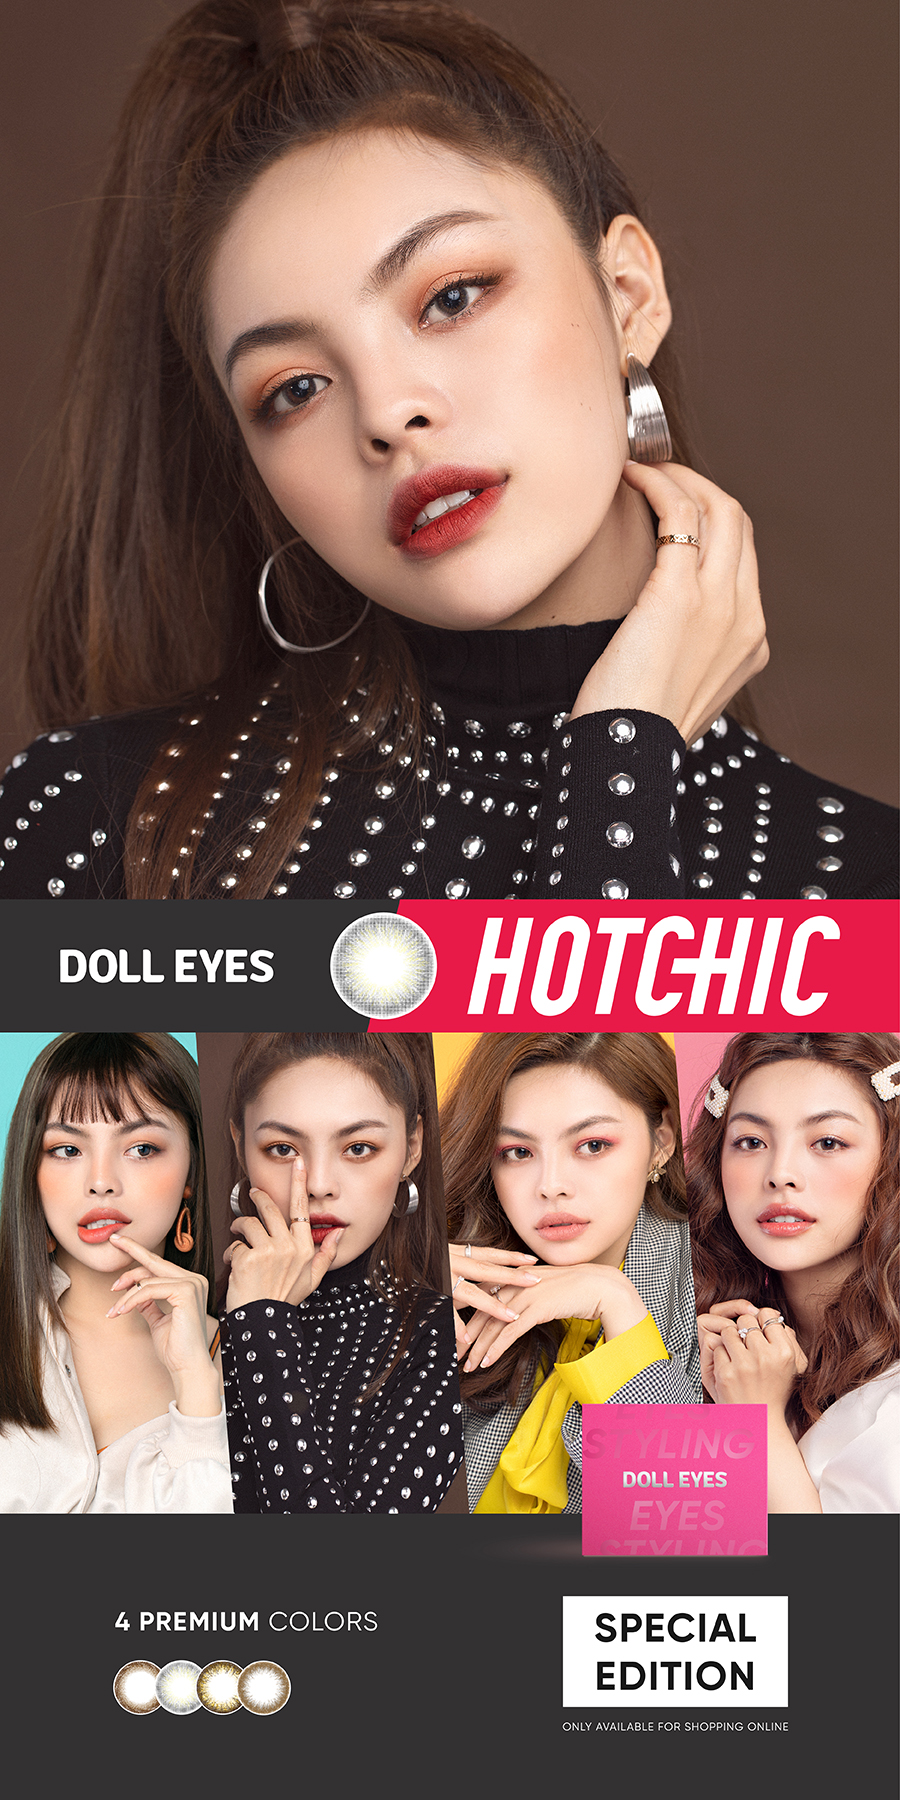 https://cdn.nhanh.vn/cdn/store/3043/psCT/20190223/11853794/layoutweb_4colors_hotchic_04.jpg